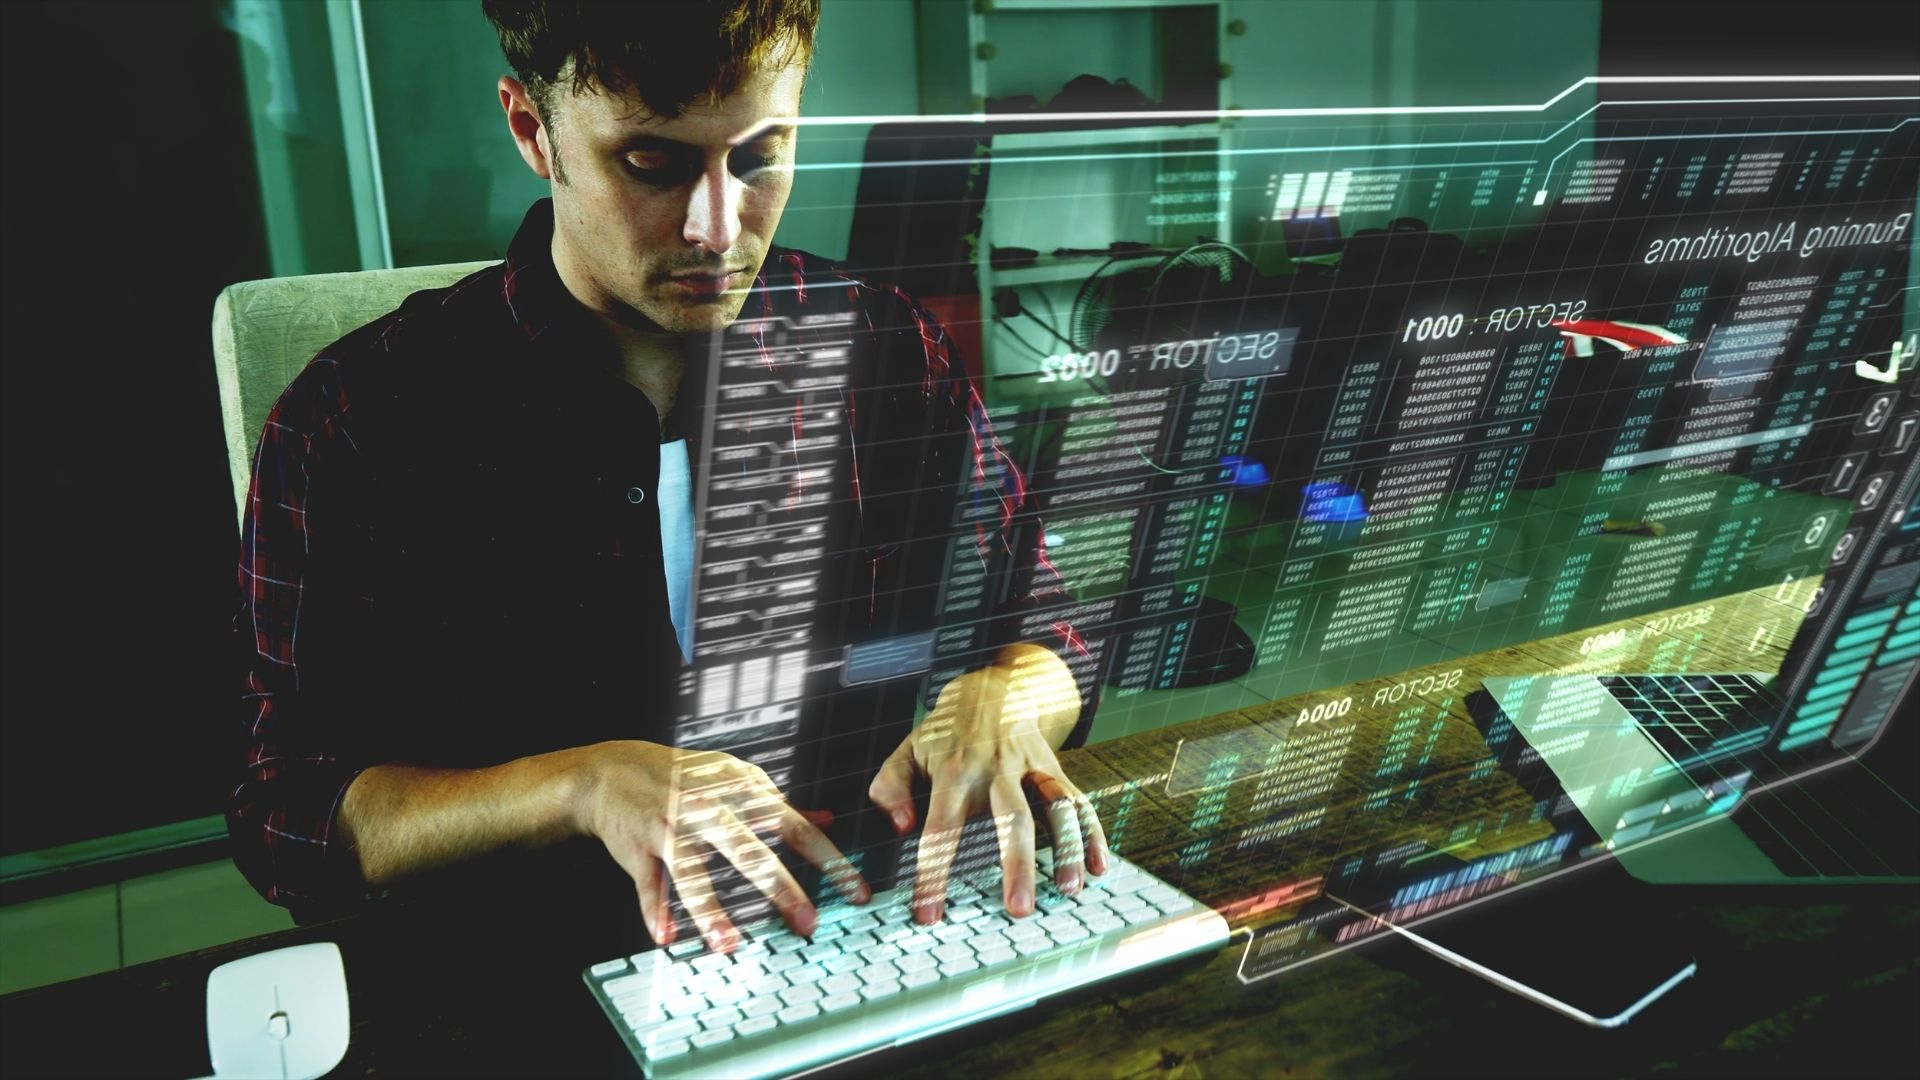 Banks can provide a protective shield to defend customers from cyber attack 41